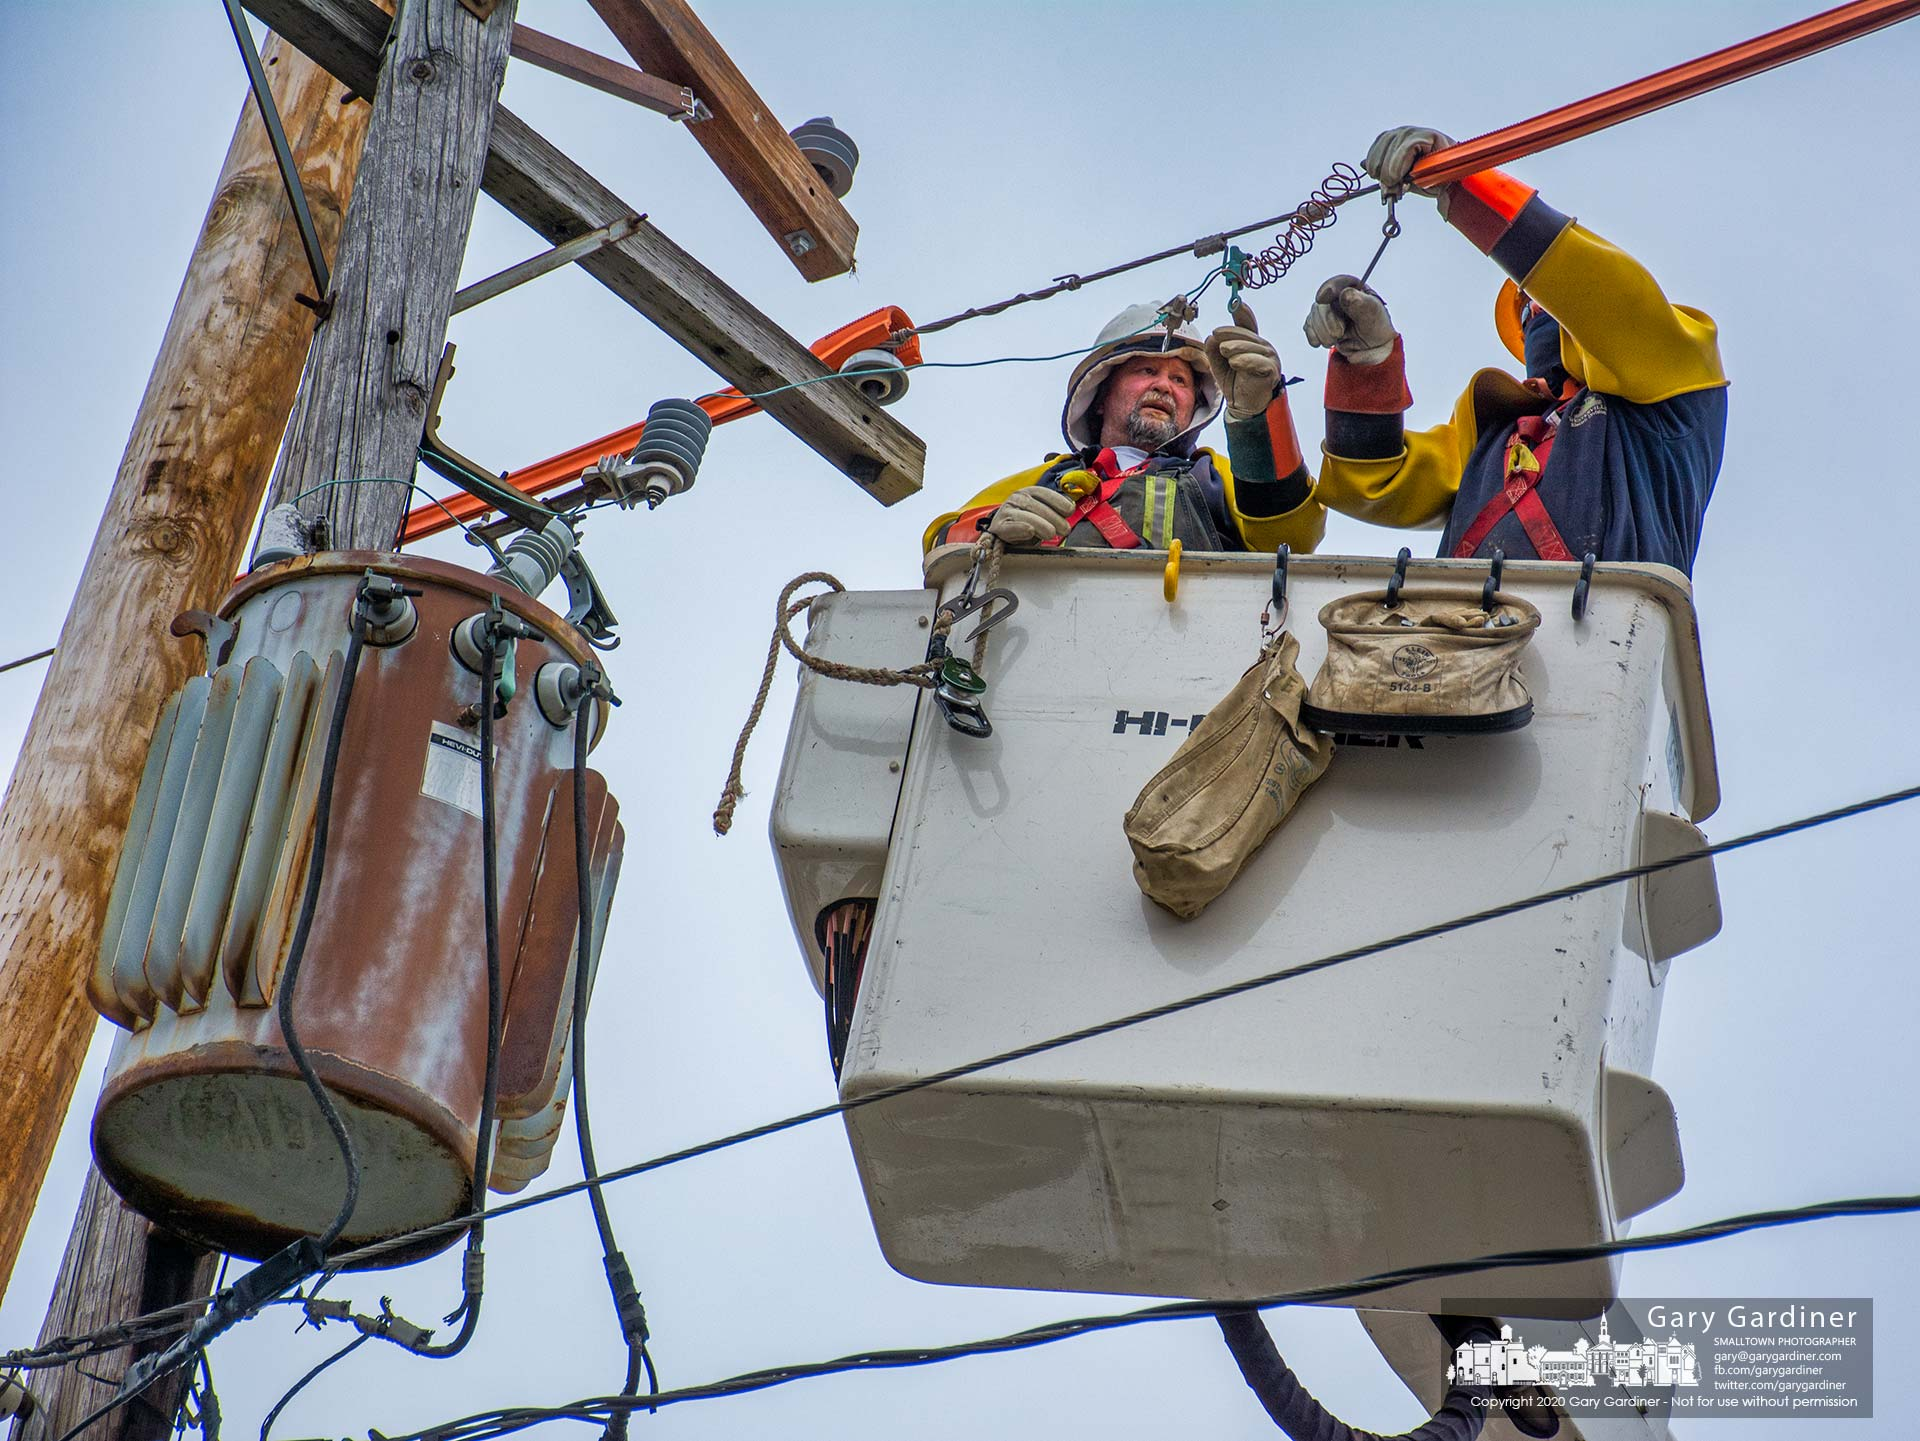 Westerville electric workers wearing safety gear isolating them from the power line prepare to move live cabling from to a new pole replacing an aged and decayed pole on South State Street. My Final Photo for Jan. 30, 2020.